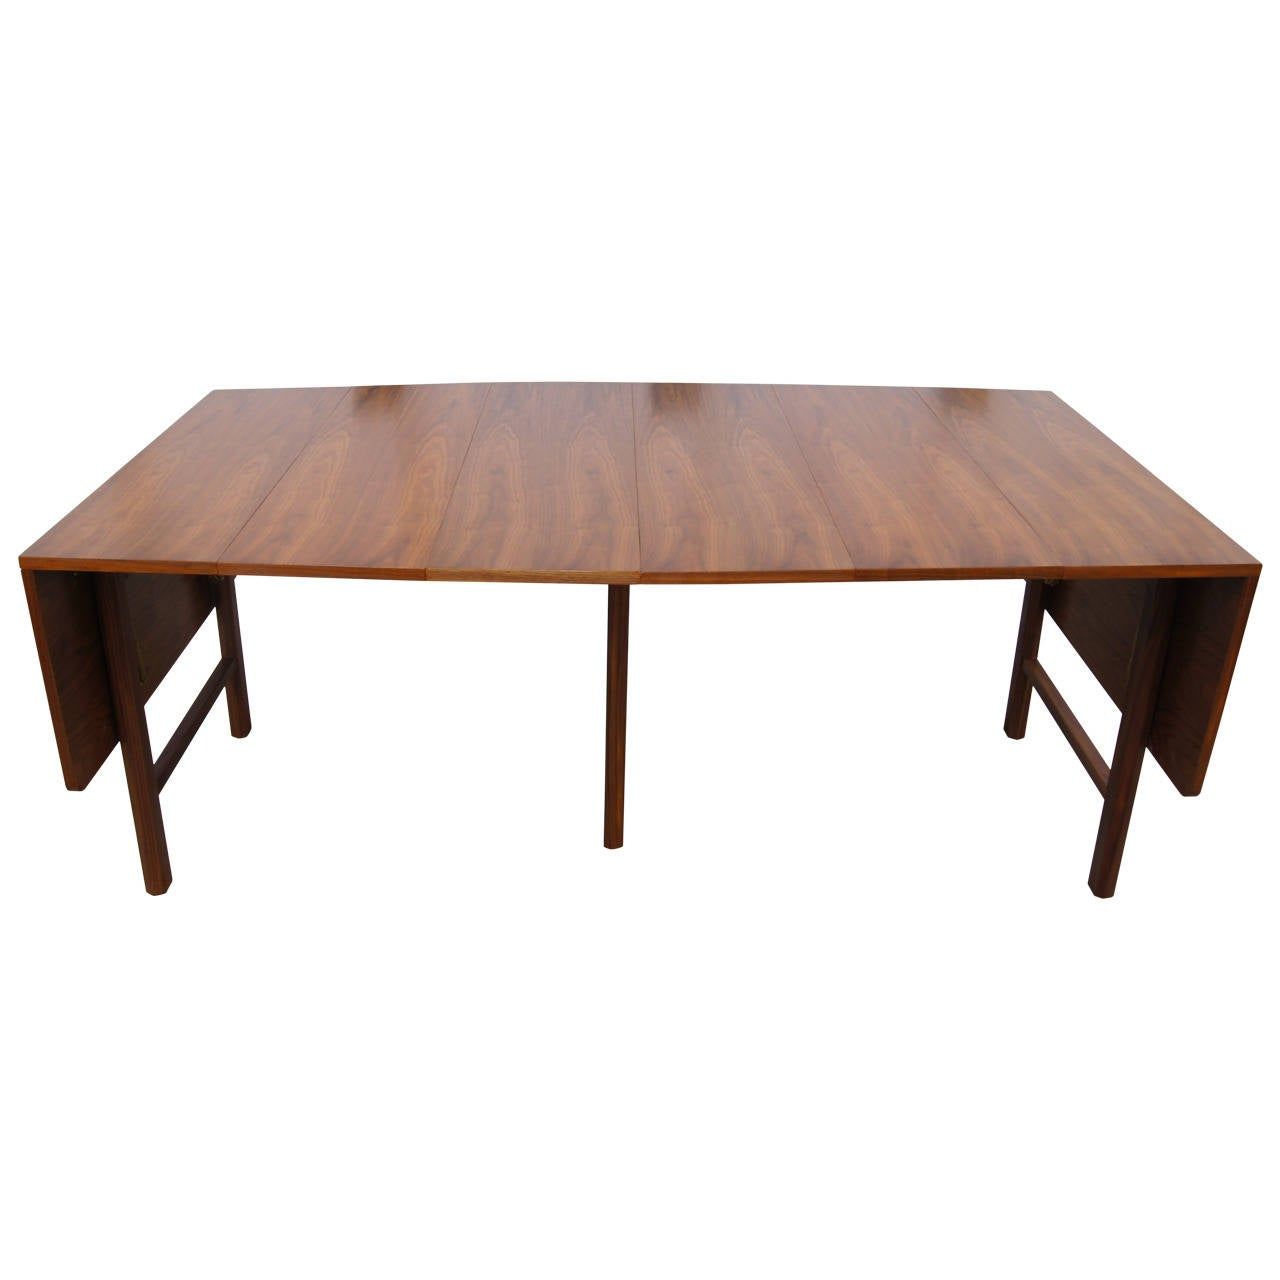 Drop leaf extension dining table by edward wormley for for Extension dining table